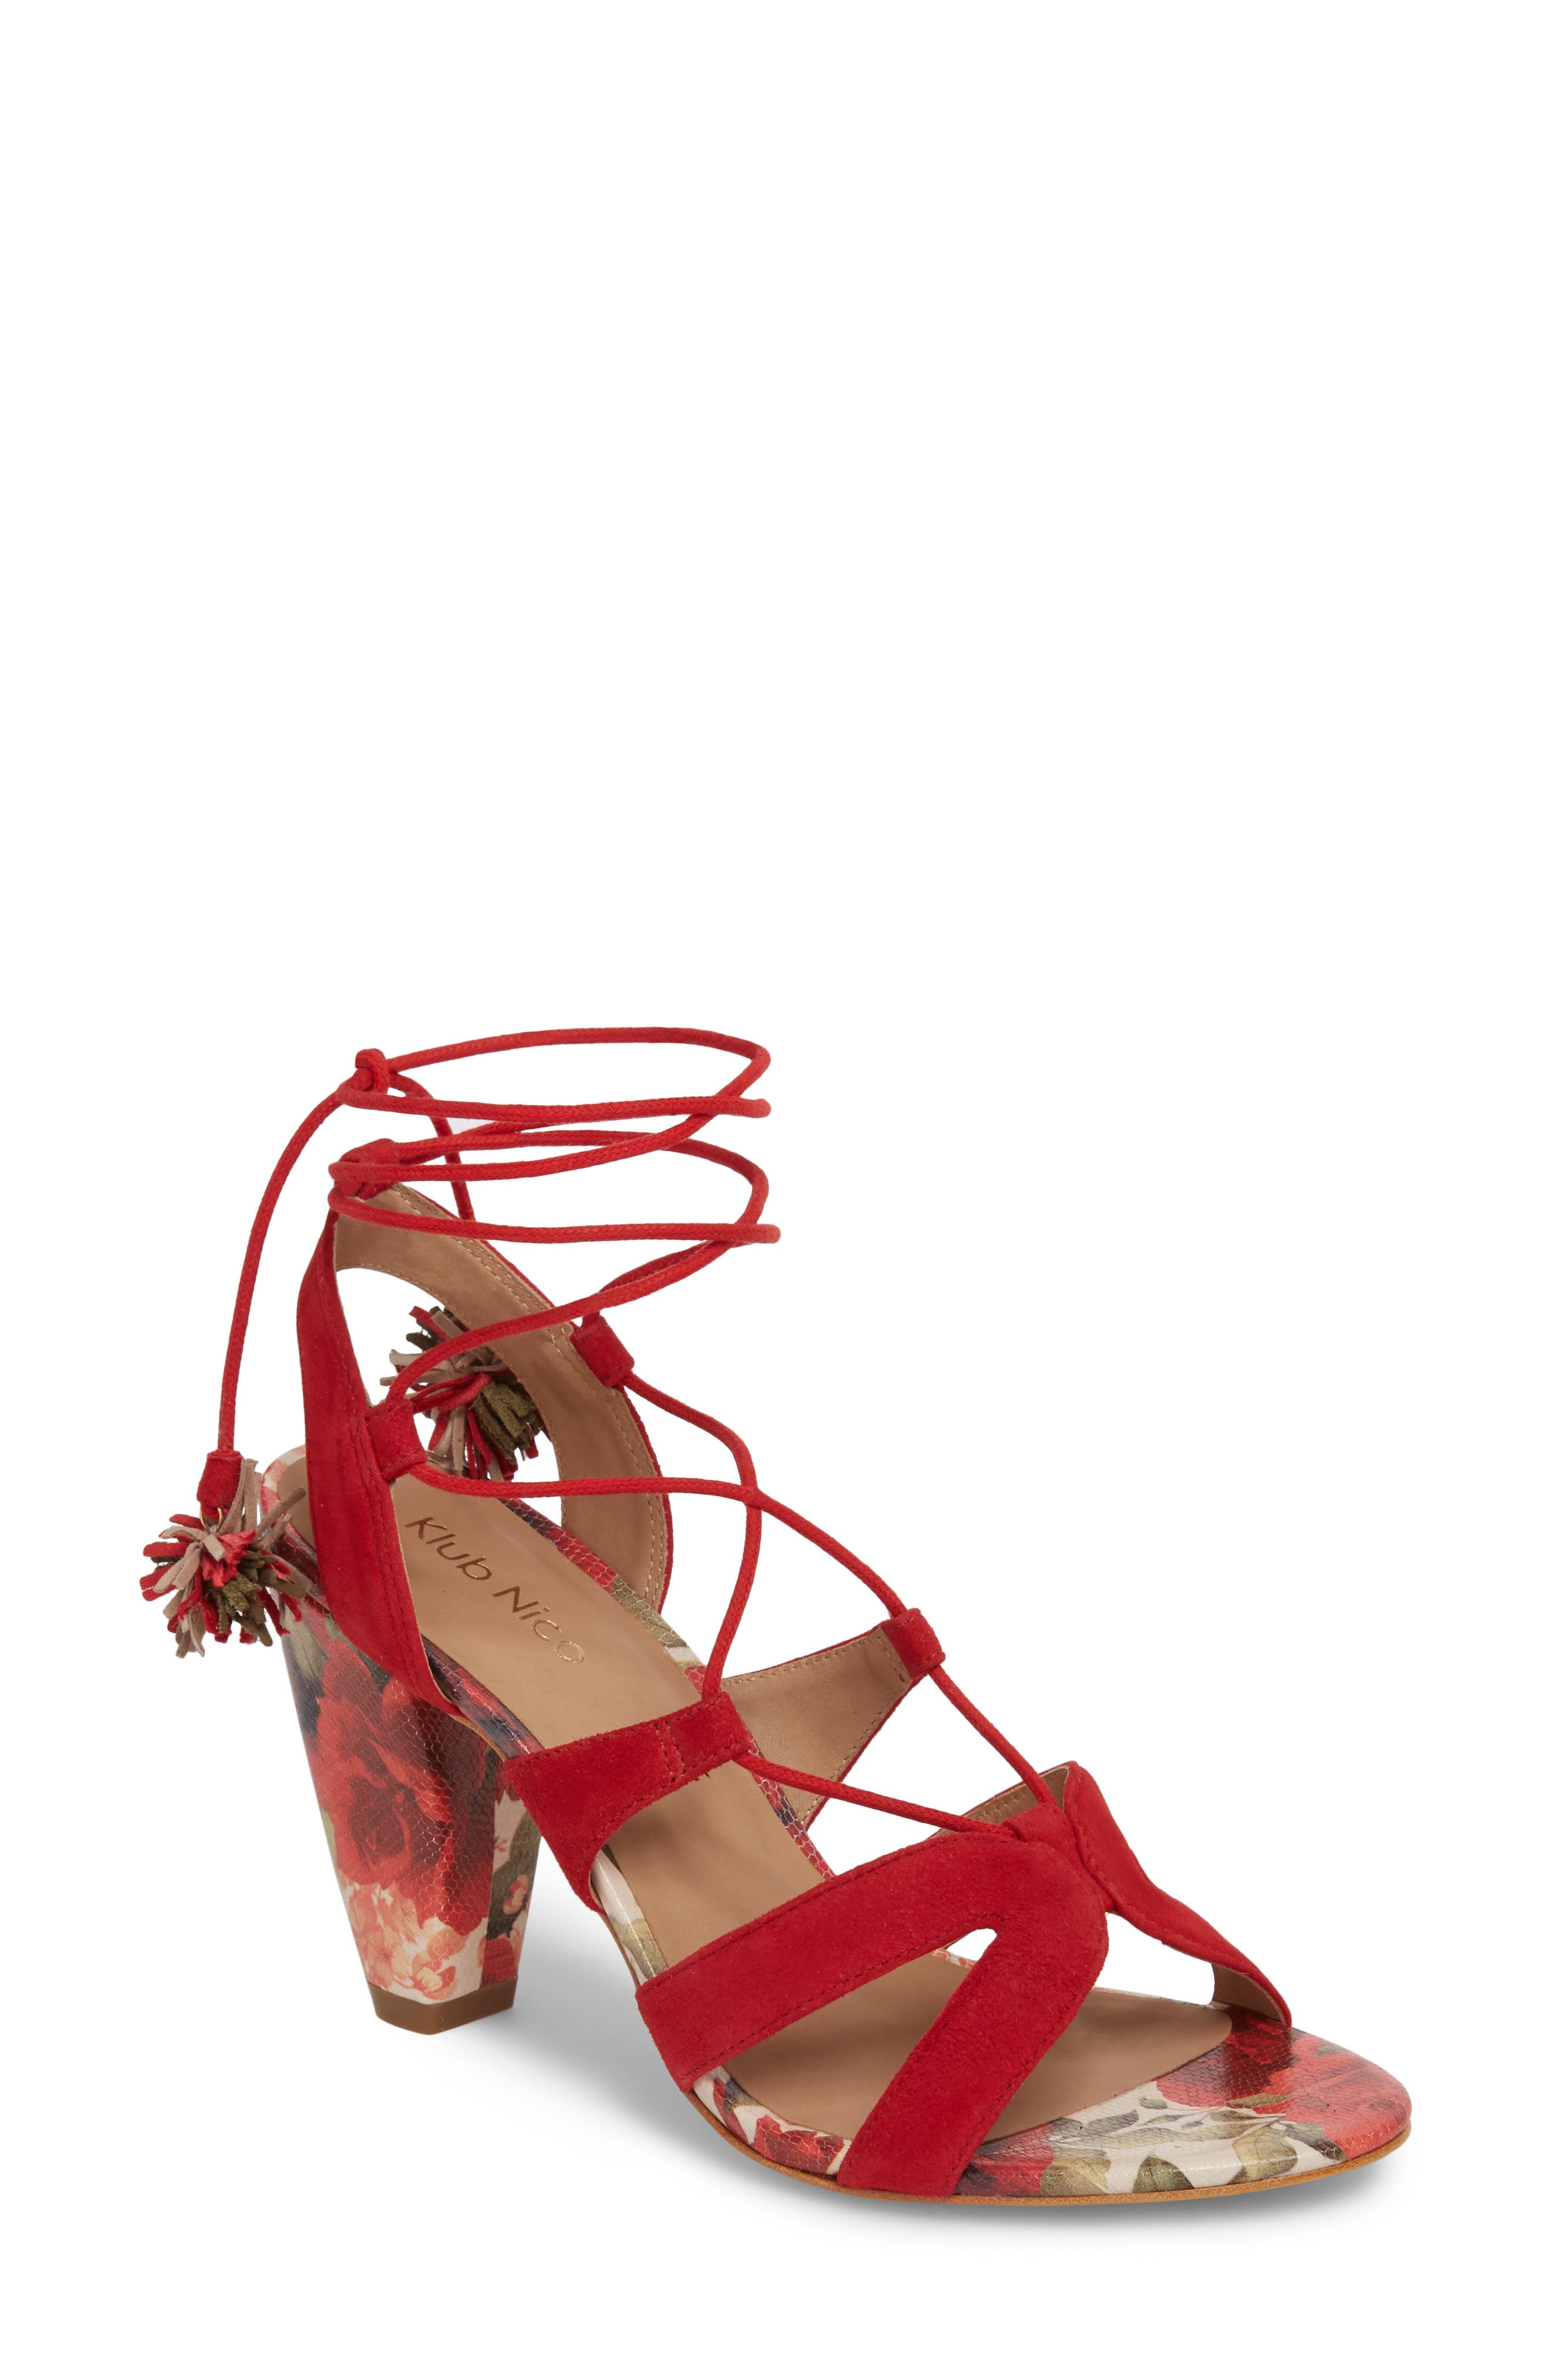 Maxine Sandal,                         Main,                         color, Red Suede